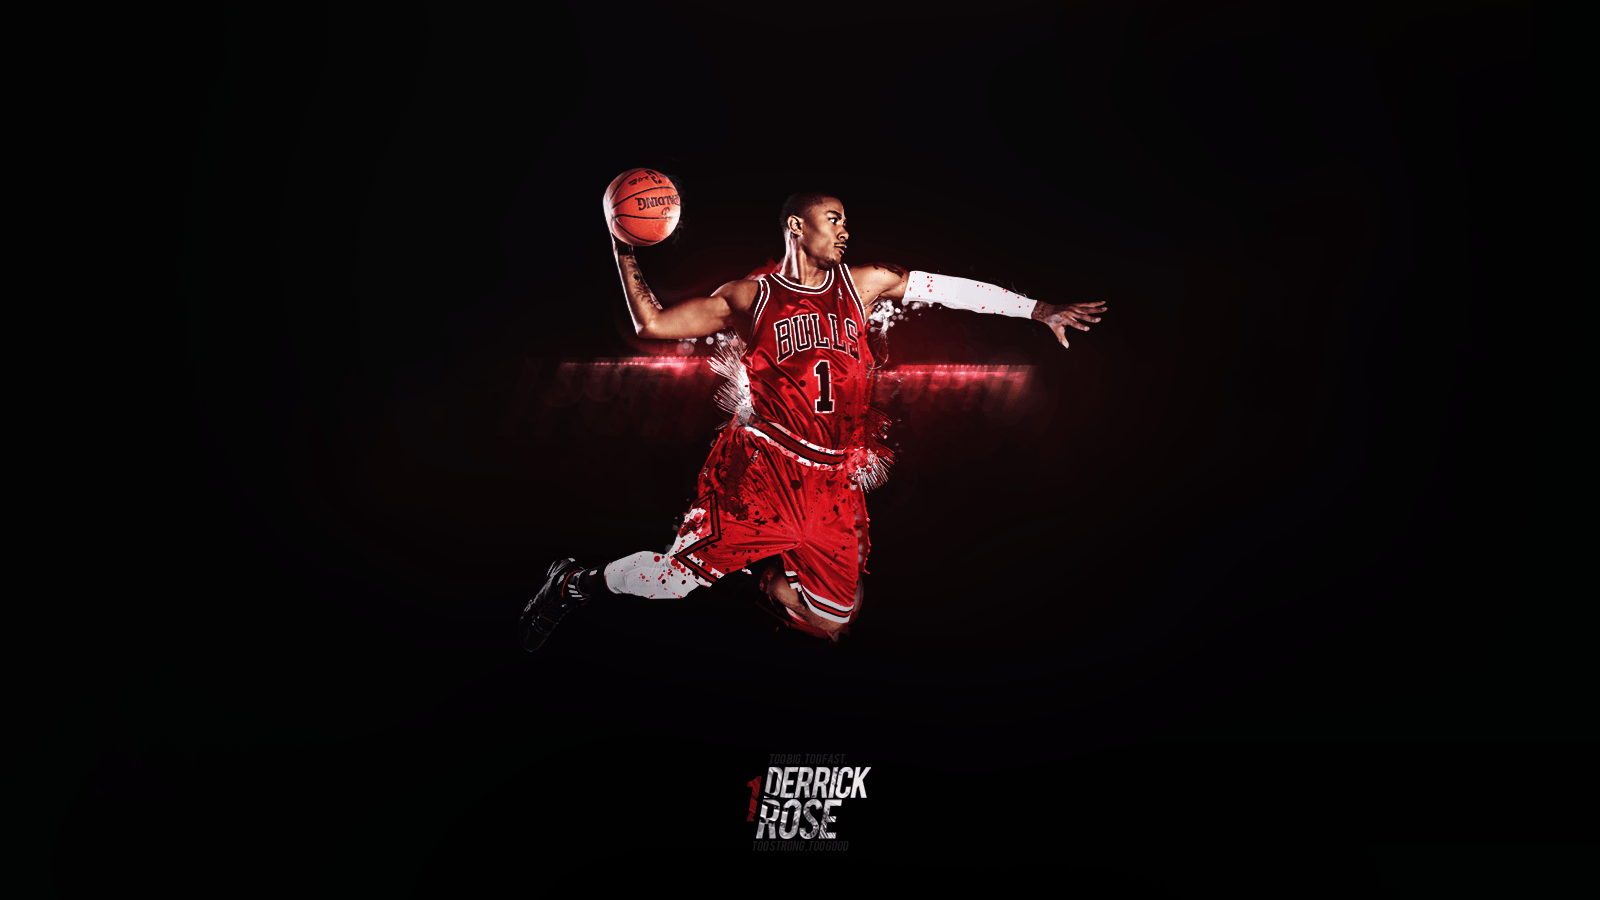 Derrick Rose Dunk Wallpapers 1600x900